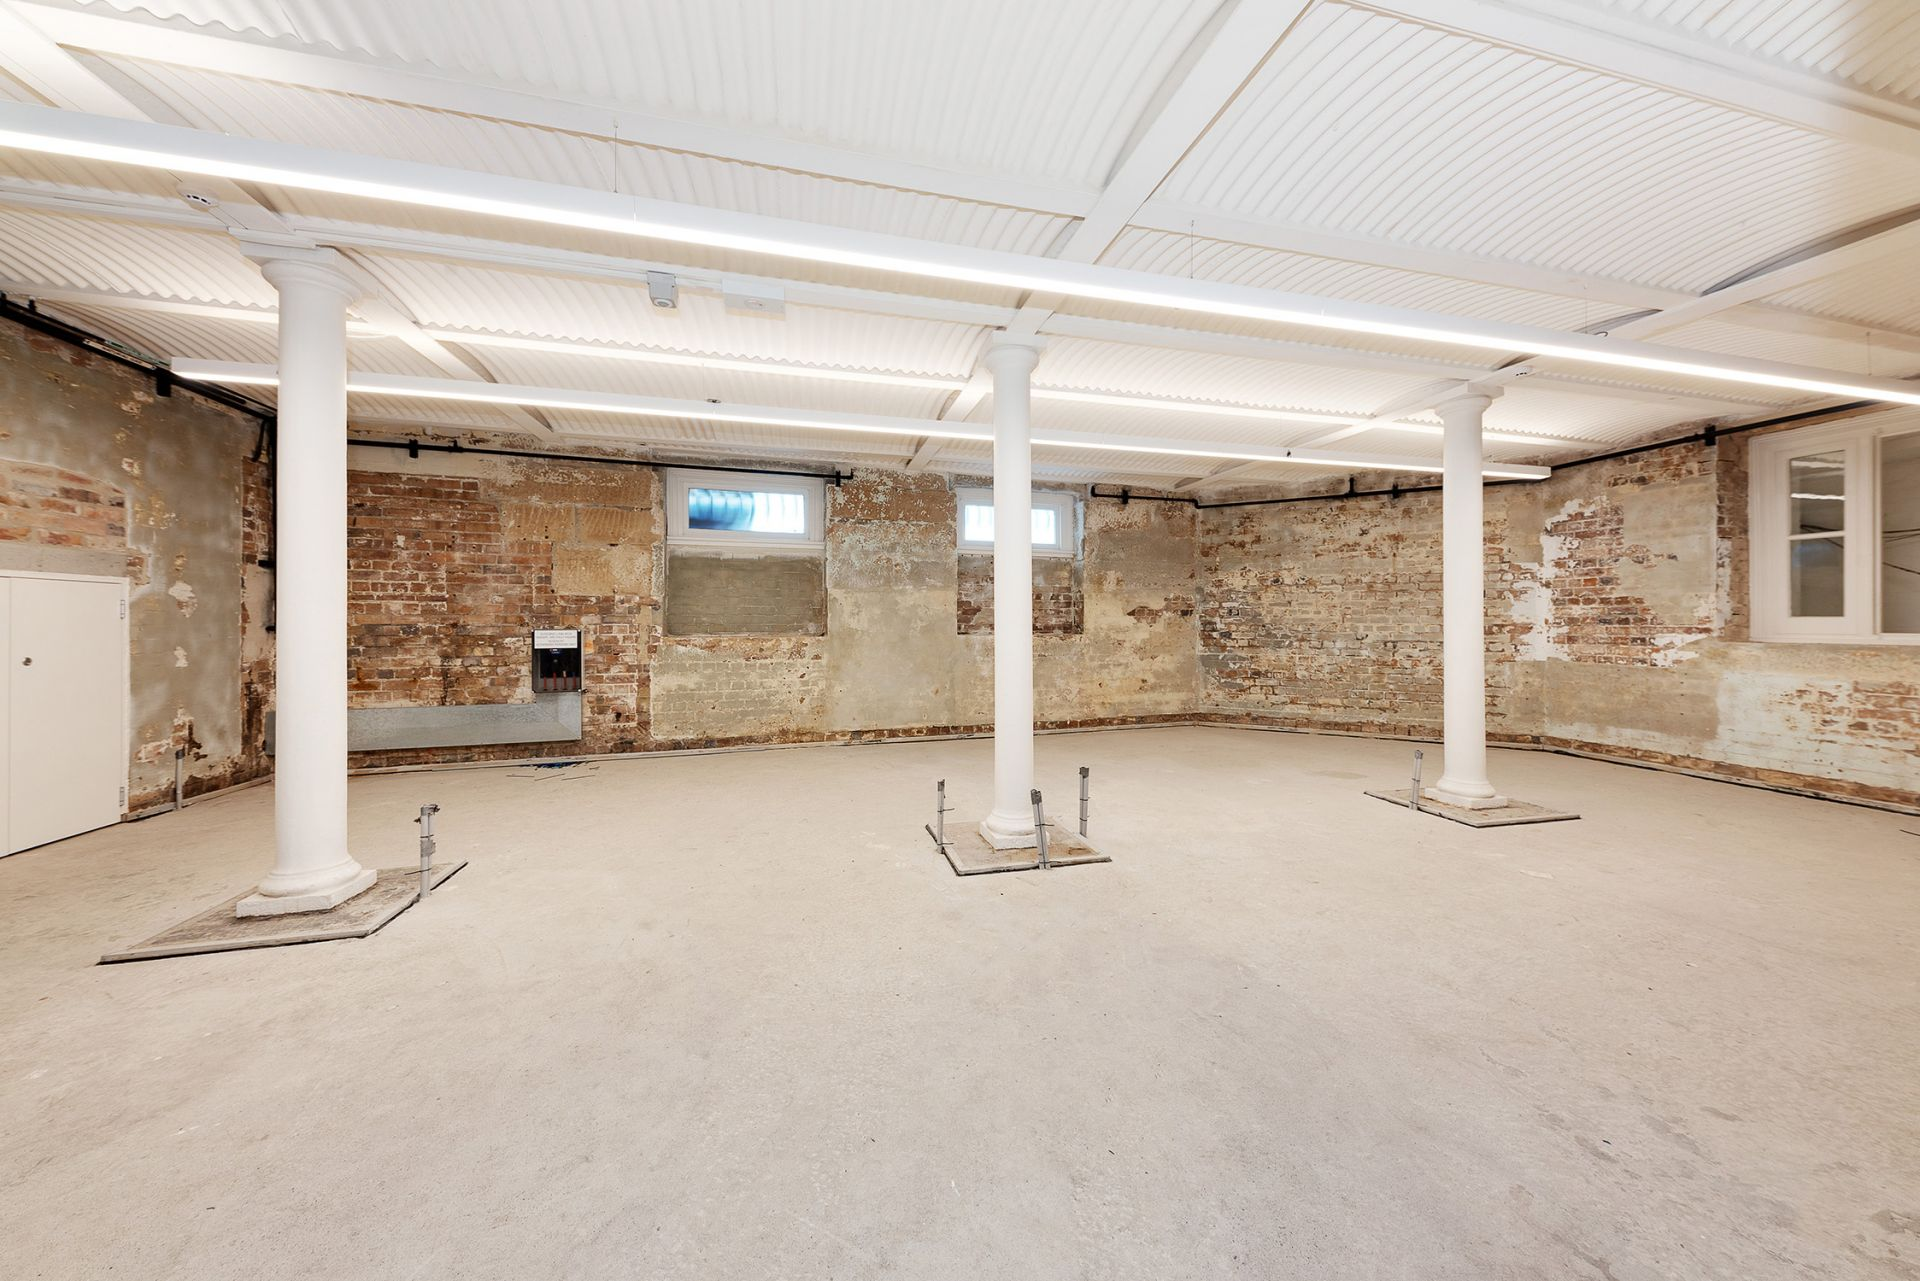 Retail or office use potential